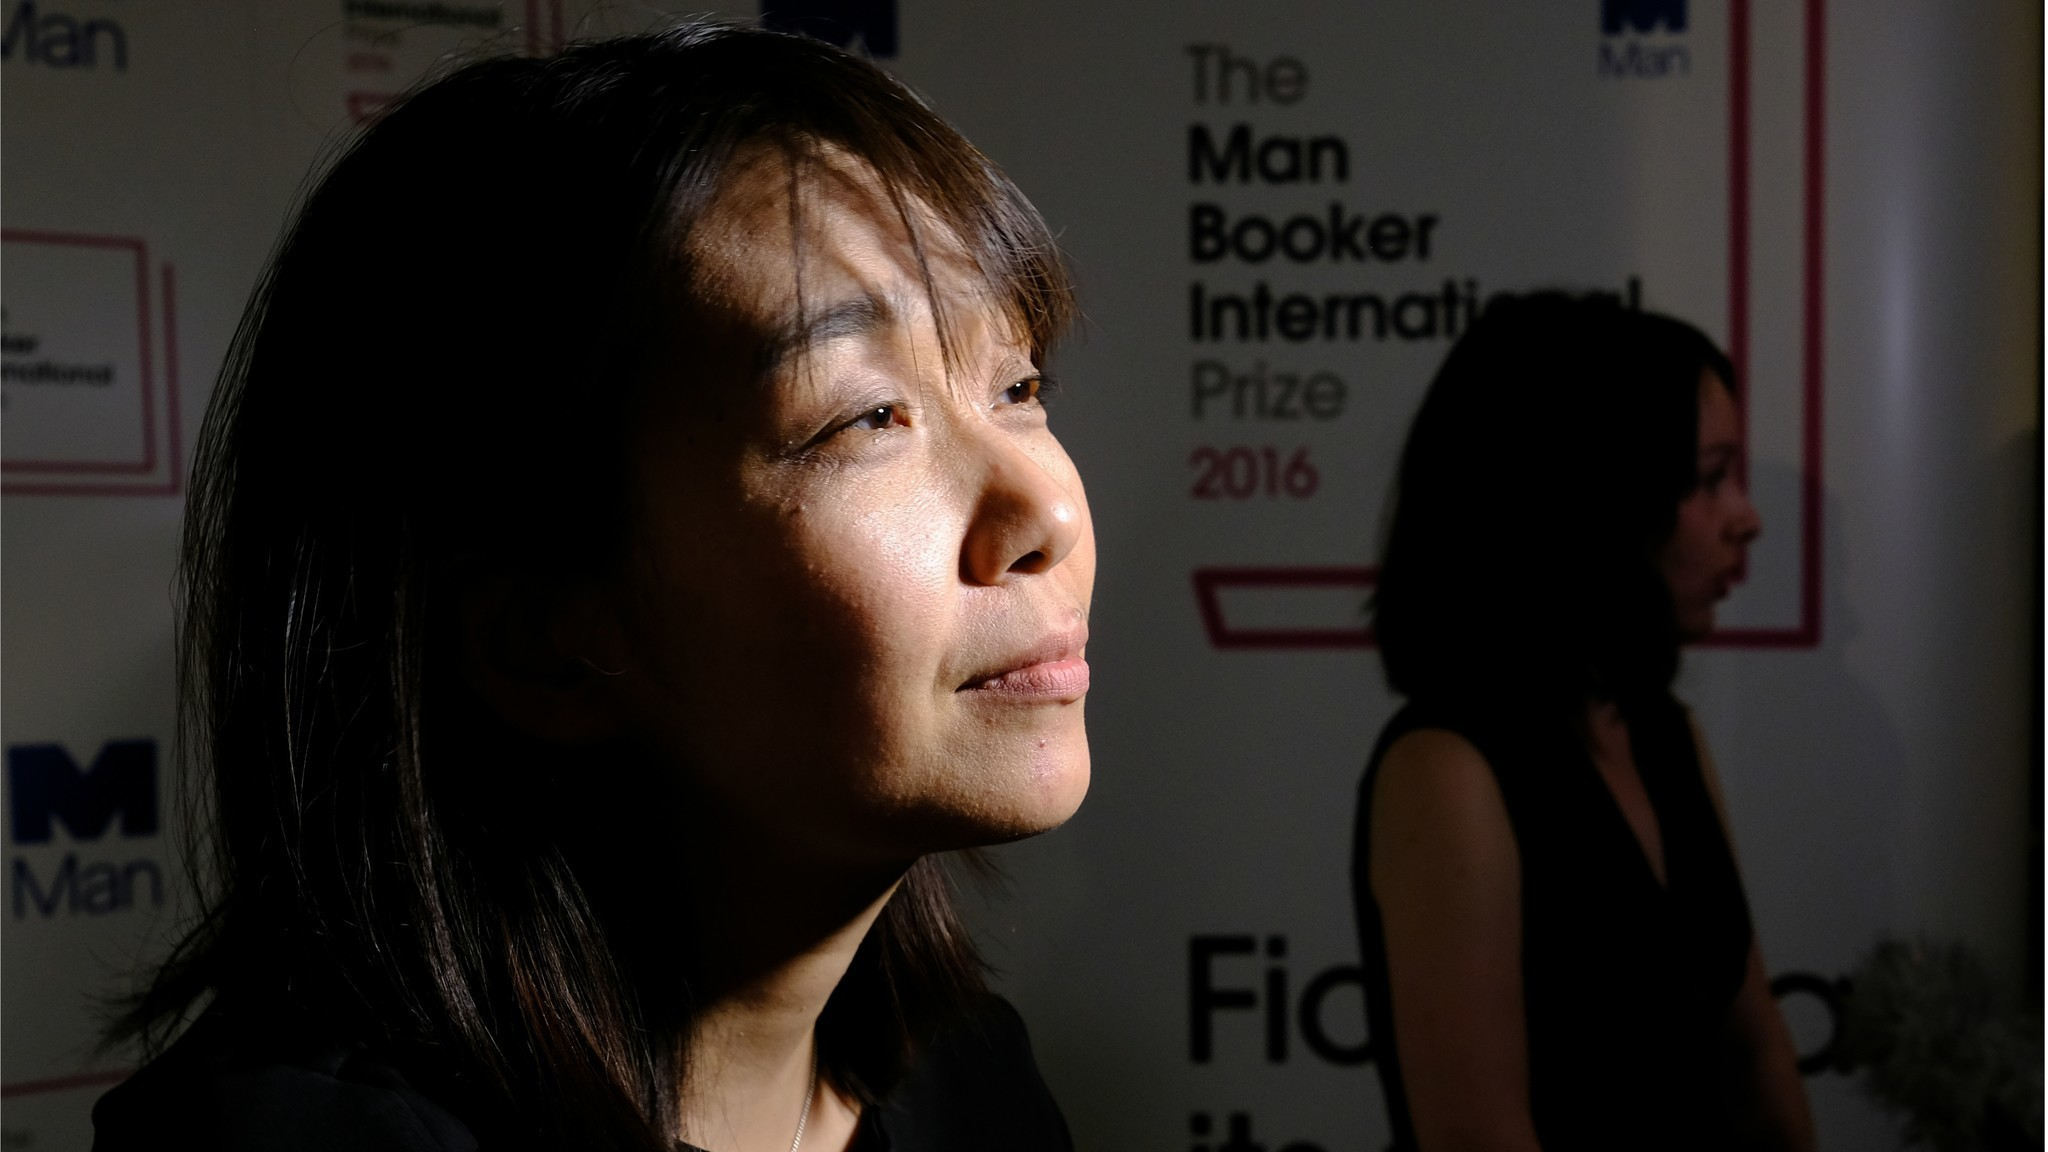 How the bestseller 'The Vegetarian,' translated from Han Kang's original, caused an uproar in South Korea